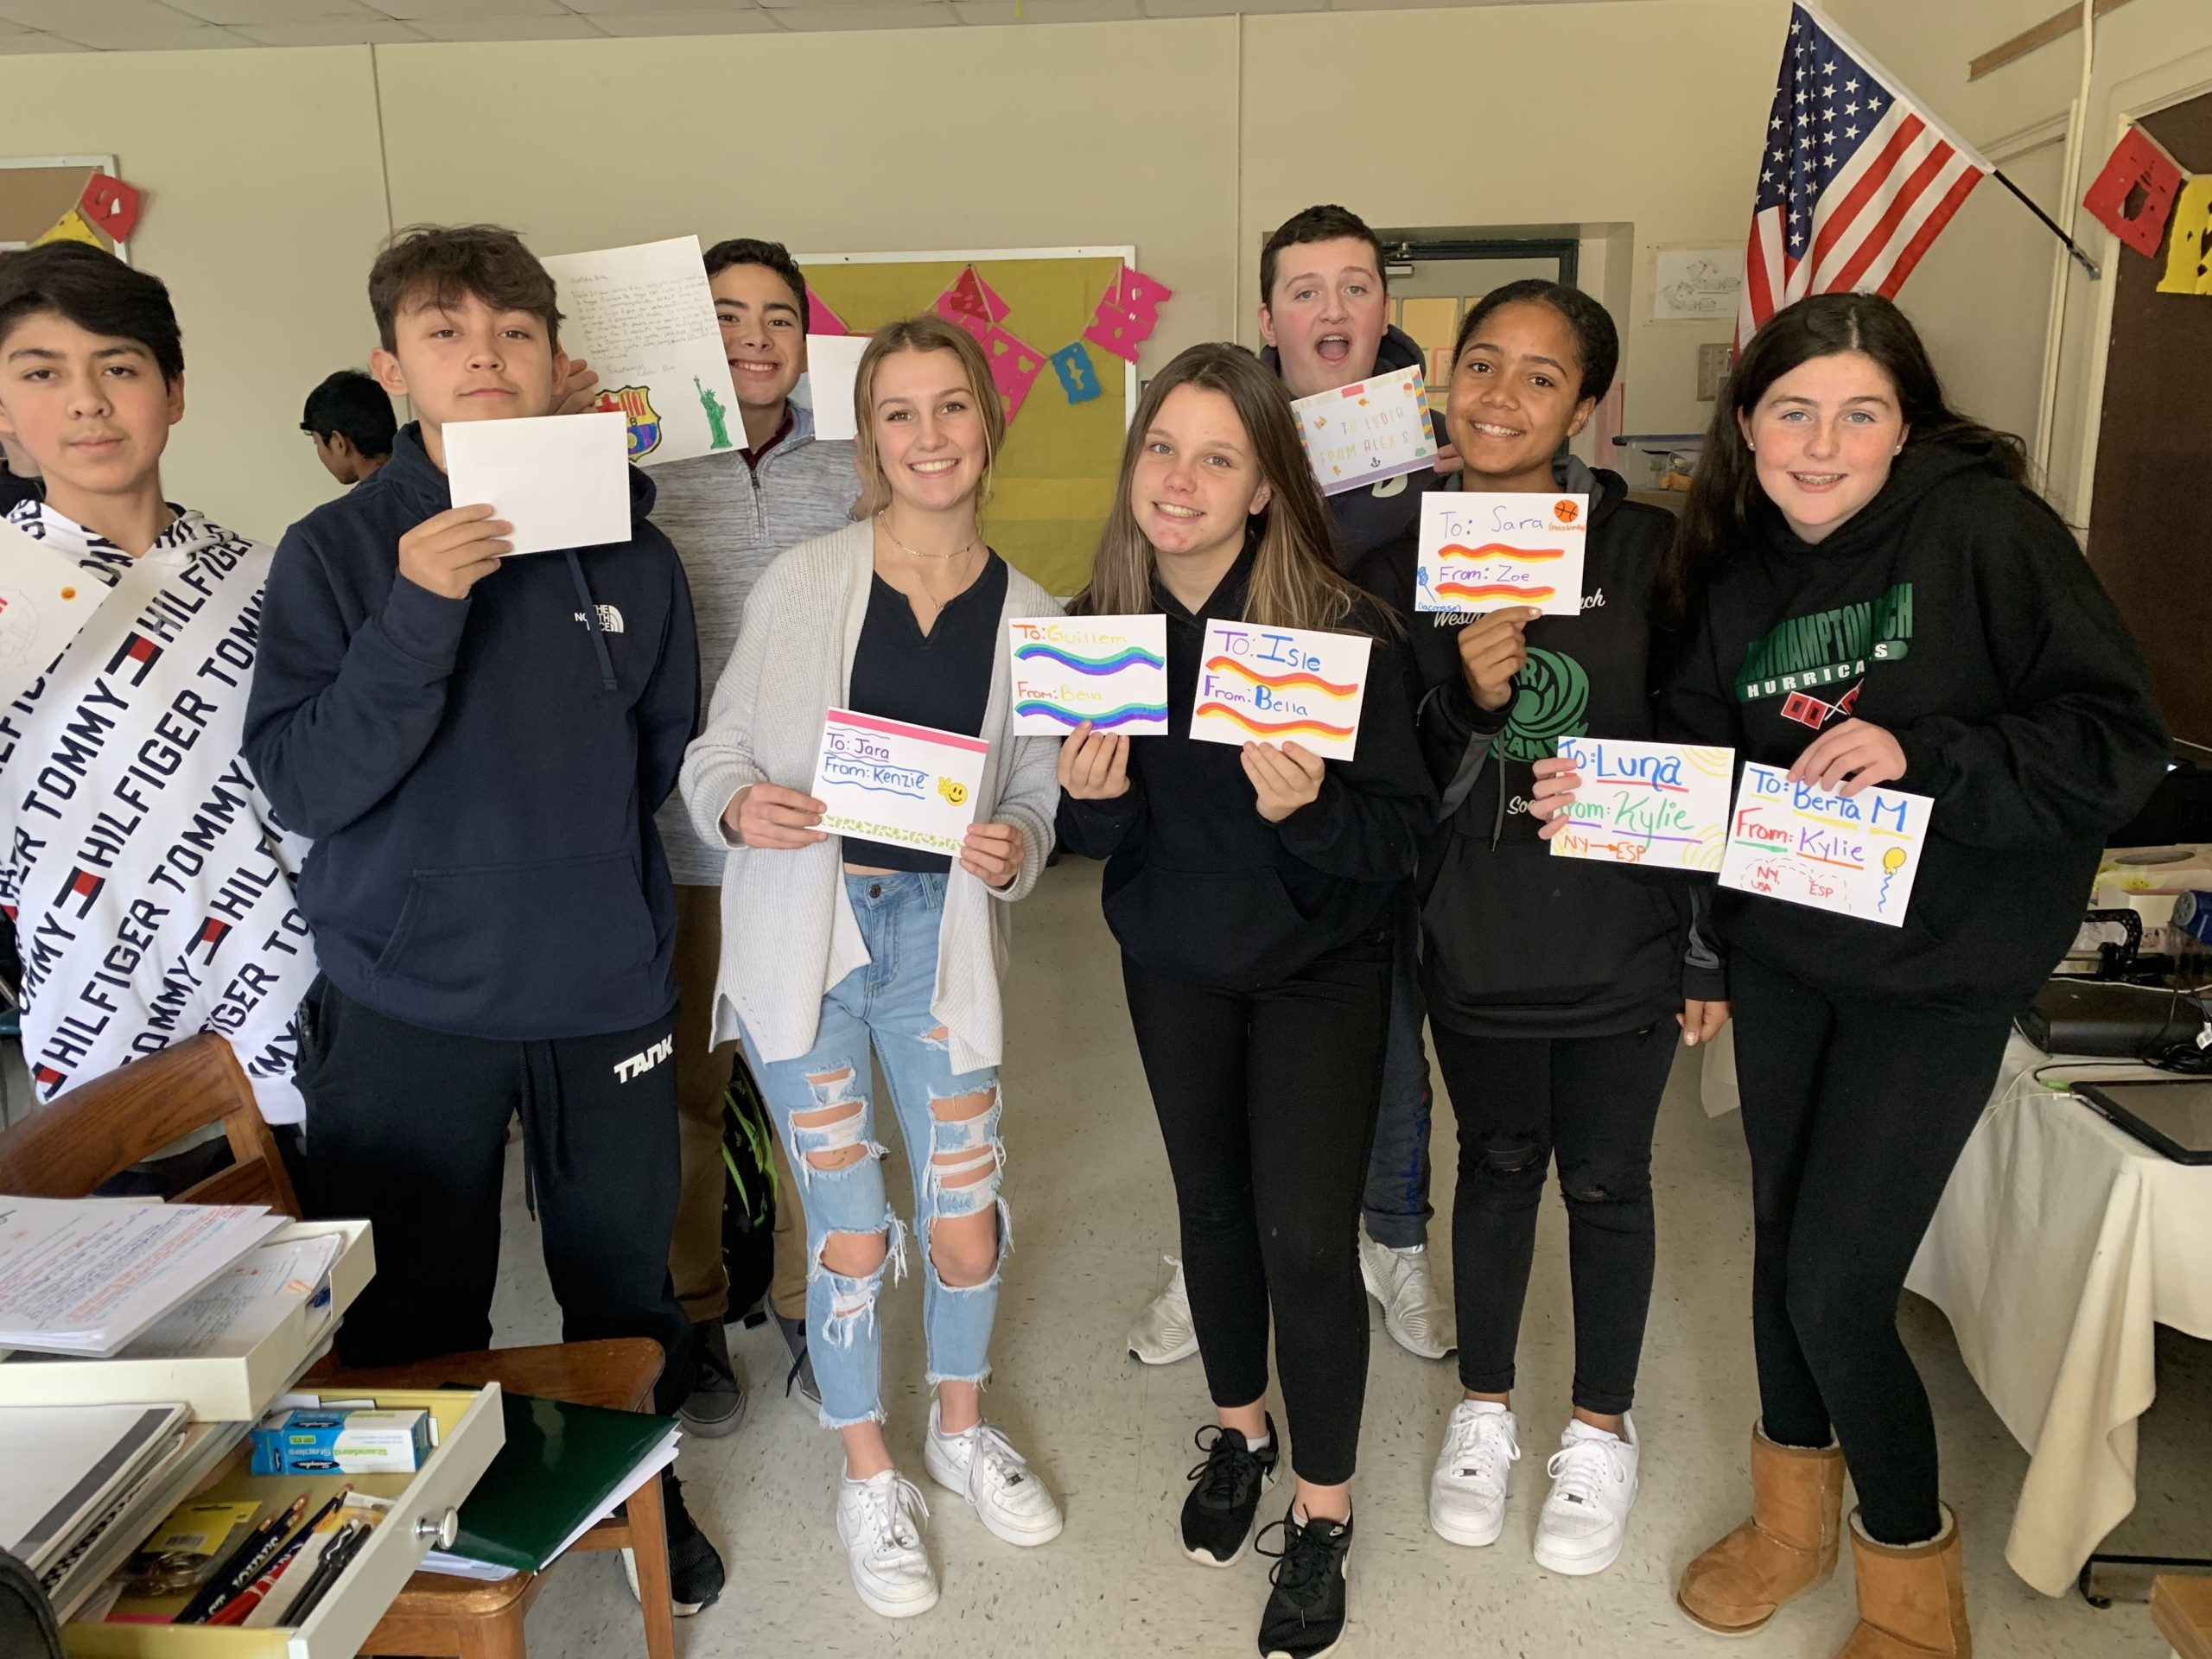 To provide her Spanish language students with an opportunity to make international connections and put the language they are learning to use, Spanish teacher Marica Illiano started a pen pal project. For the project, all 60 of her Spanish 2 students at Westhampton Beach Middle School have been writing letters to students studying English in Barcelona.